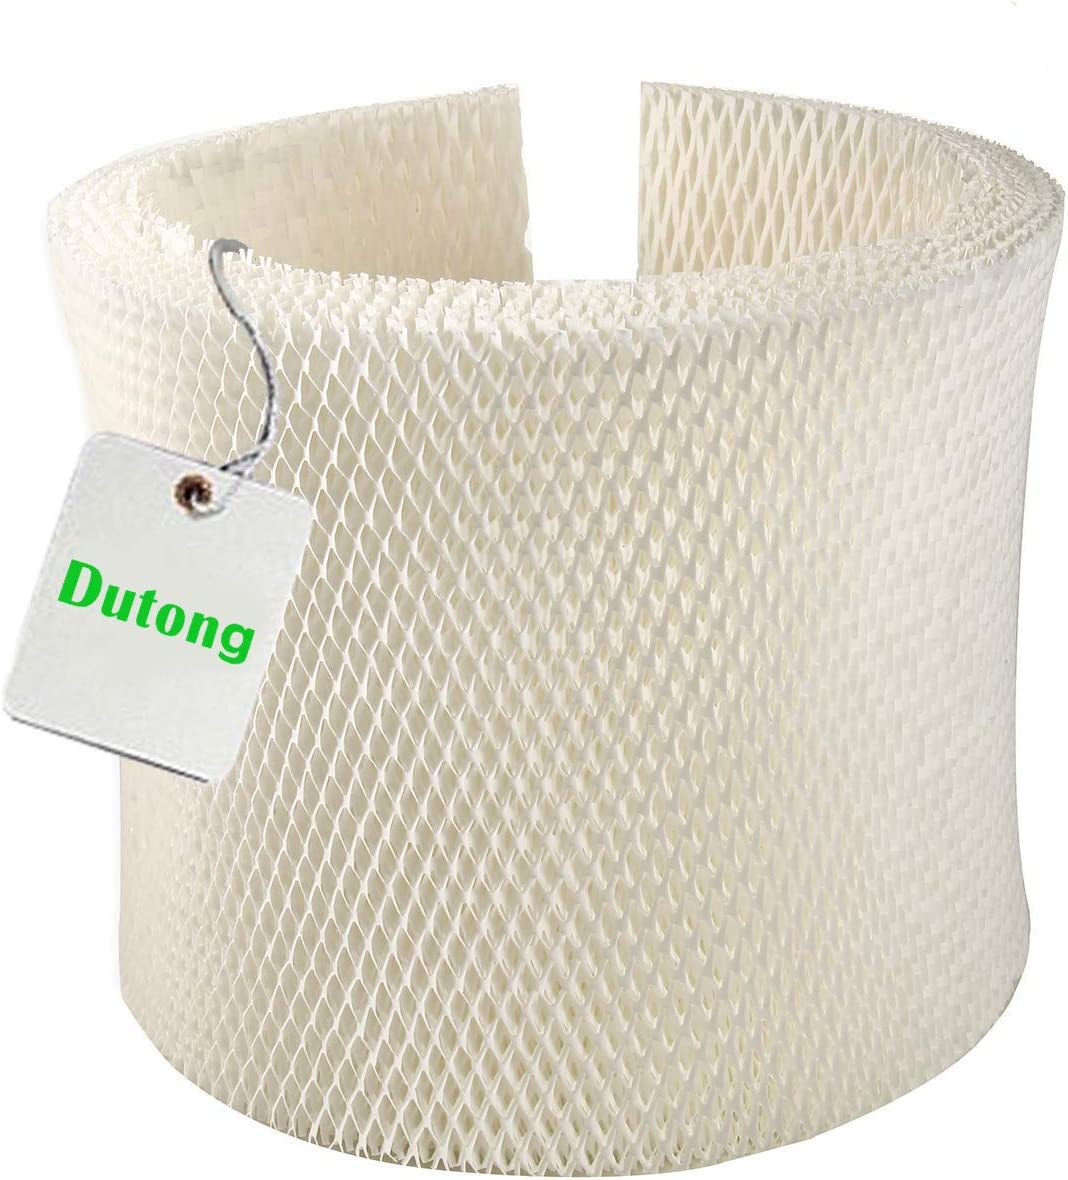 Dutong Premium Maf2 Max 75% Max 79% OFF OFF Replacement Wicking Humidifier Compa Filter-